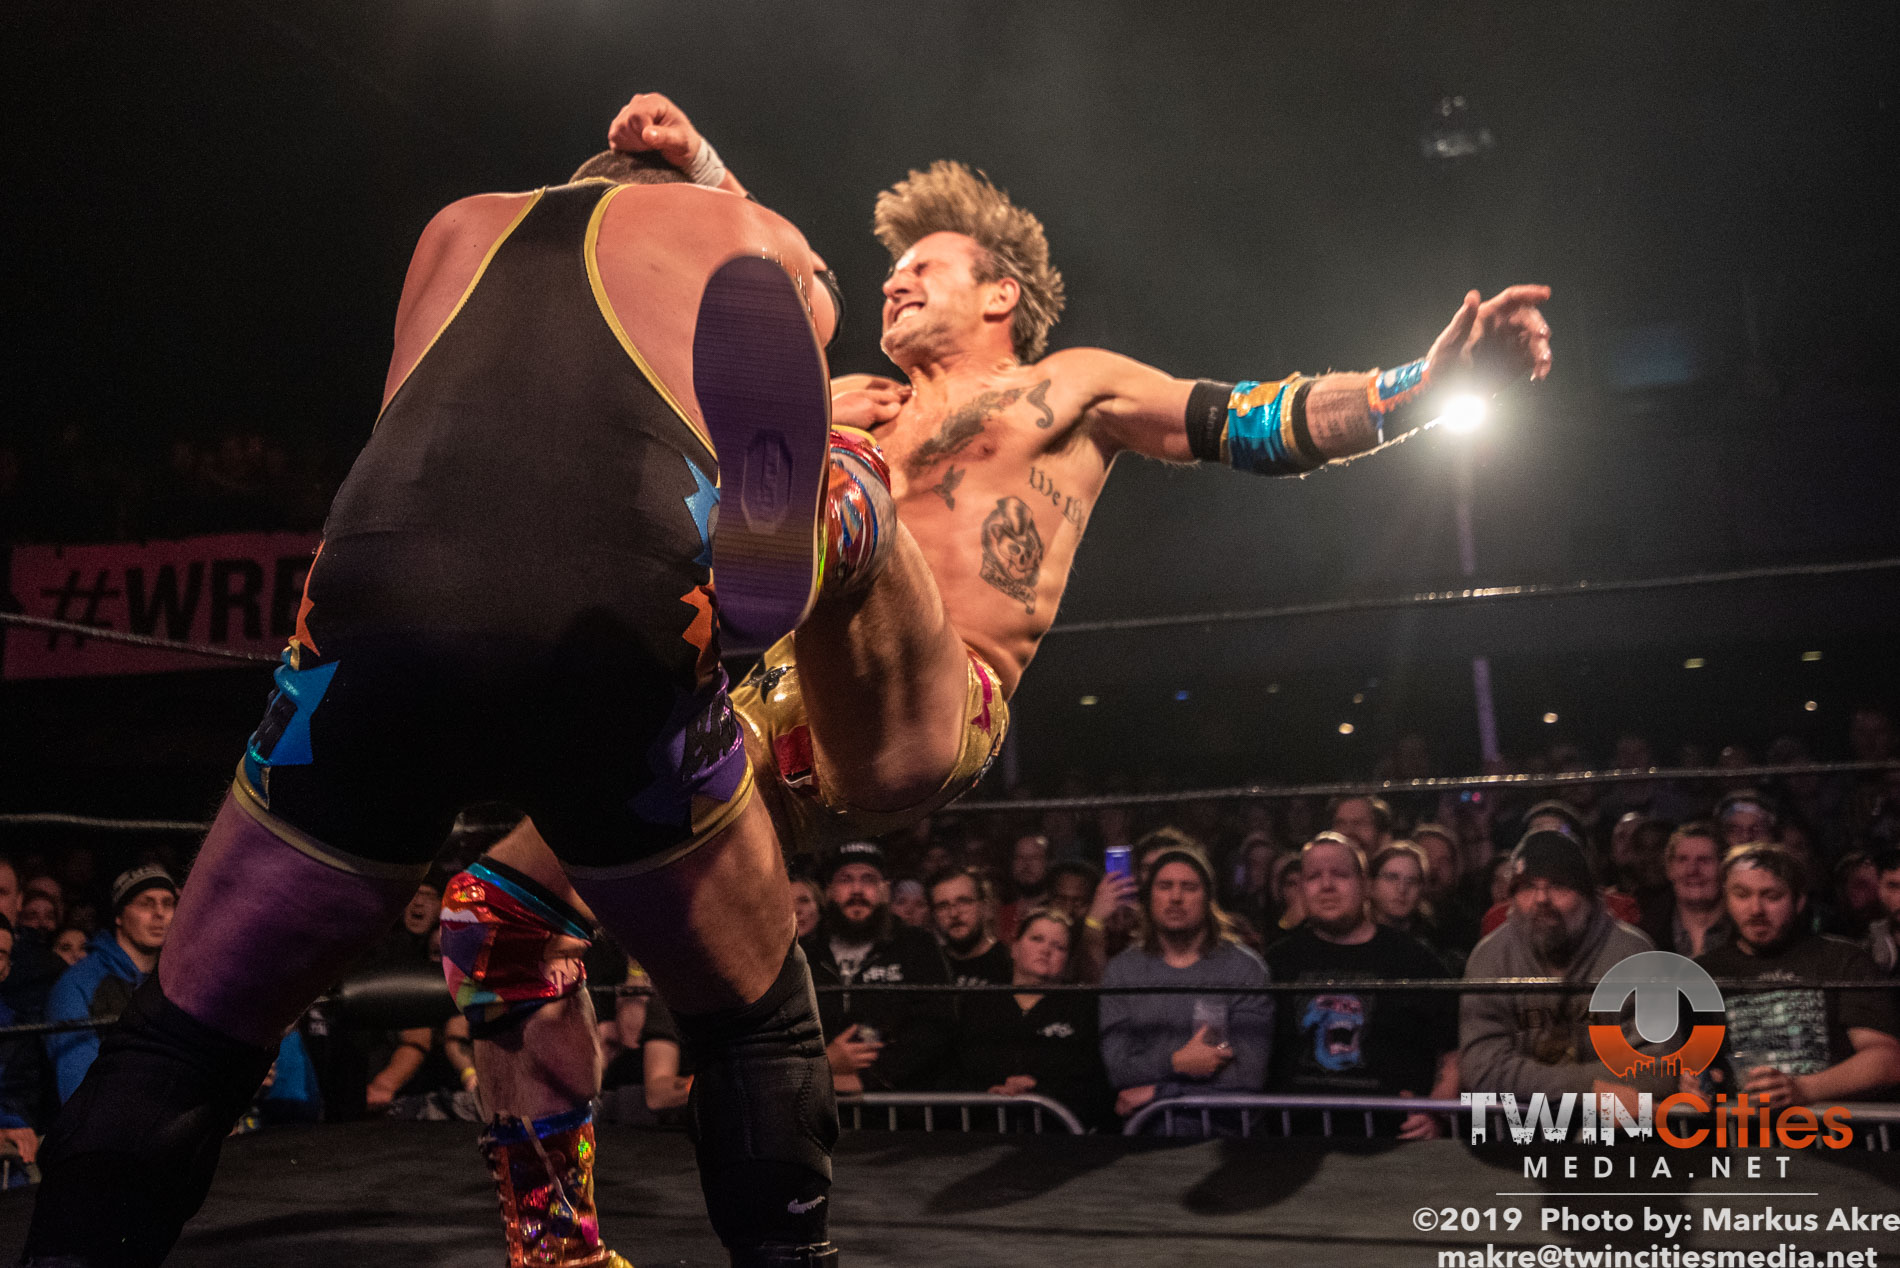 Wrestlepalooza - Match 3-12